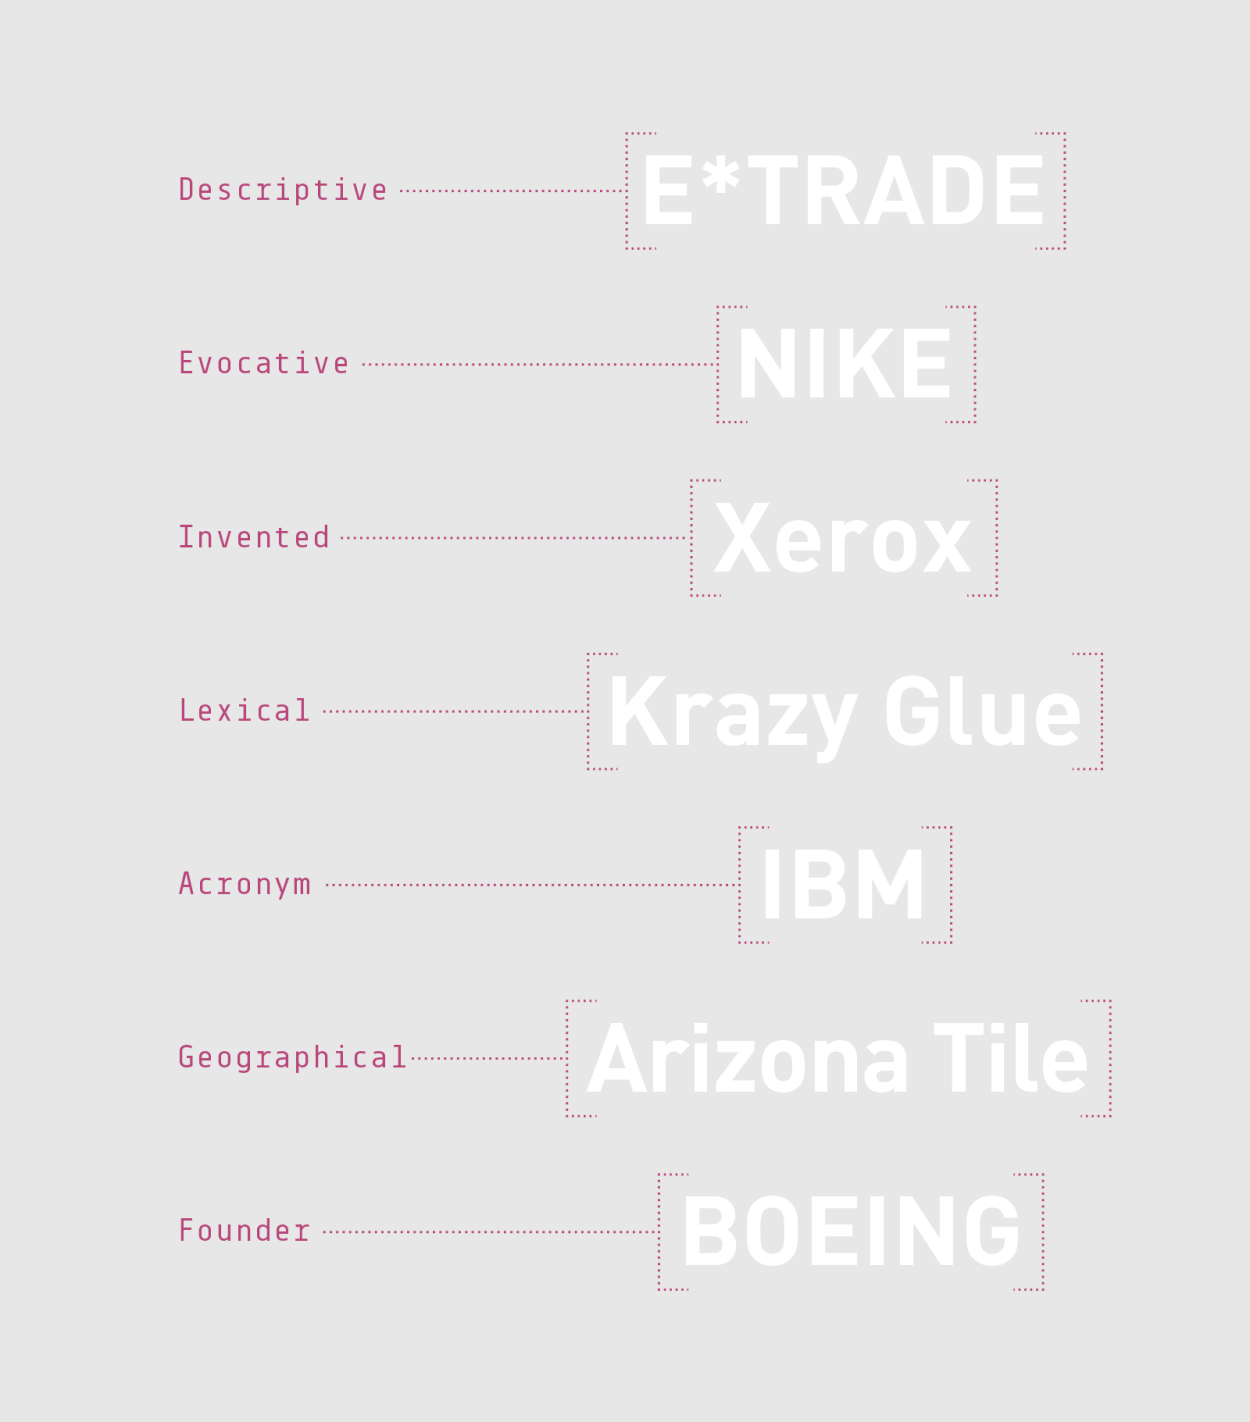 7 Popular Types of Brand Names